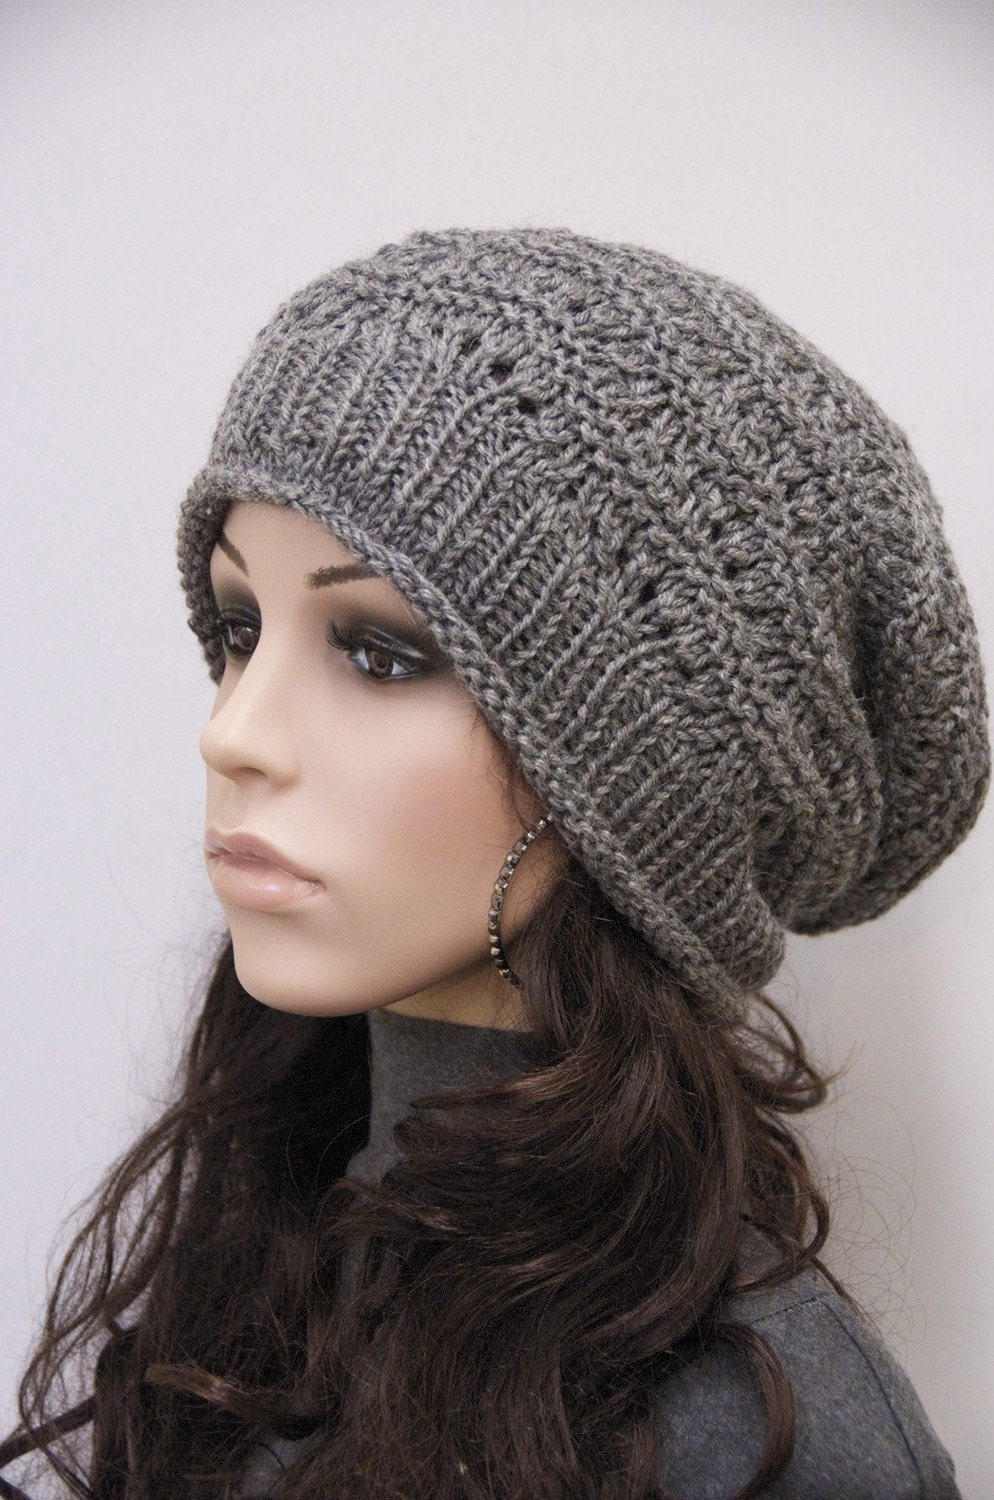 Knitting Patterns Free Slouchy Hat : Knit hat Charcoal Chunky Wool Hat slouchy hatwool by MaxMelody